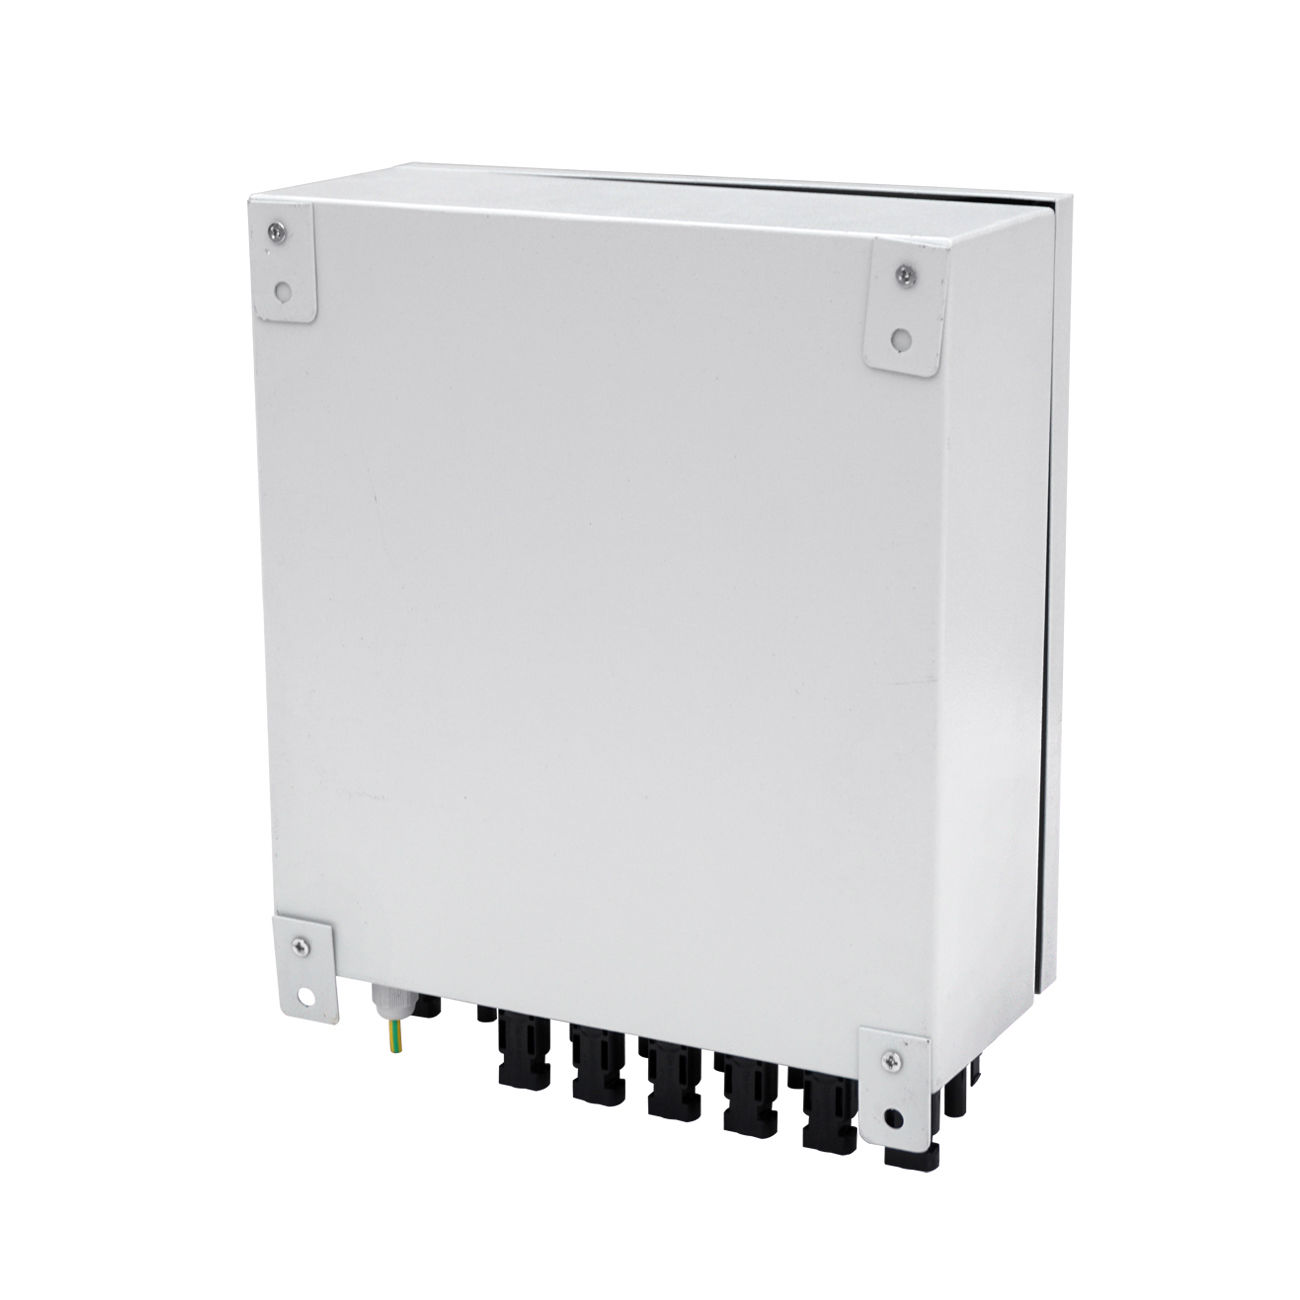 6 String Solar Pv Array Combiner Box W Circuit Breakers Surge Energy Lightning Protection For Off